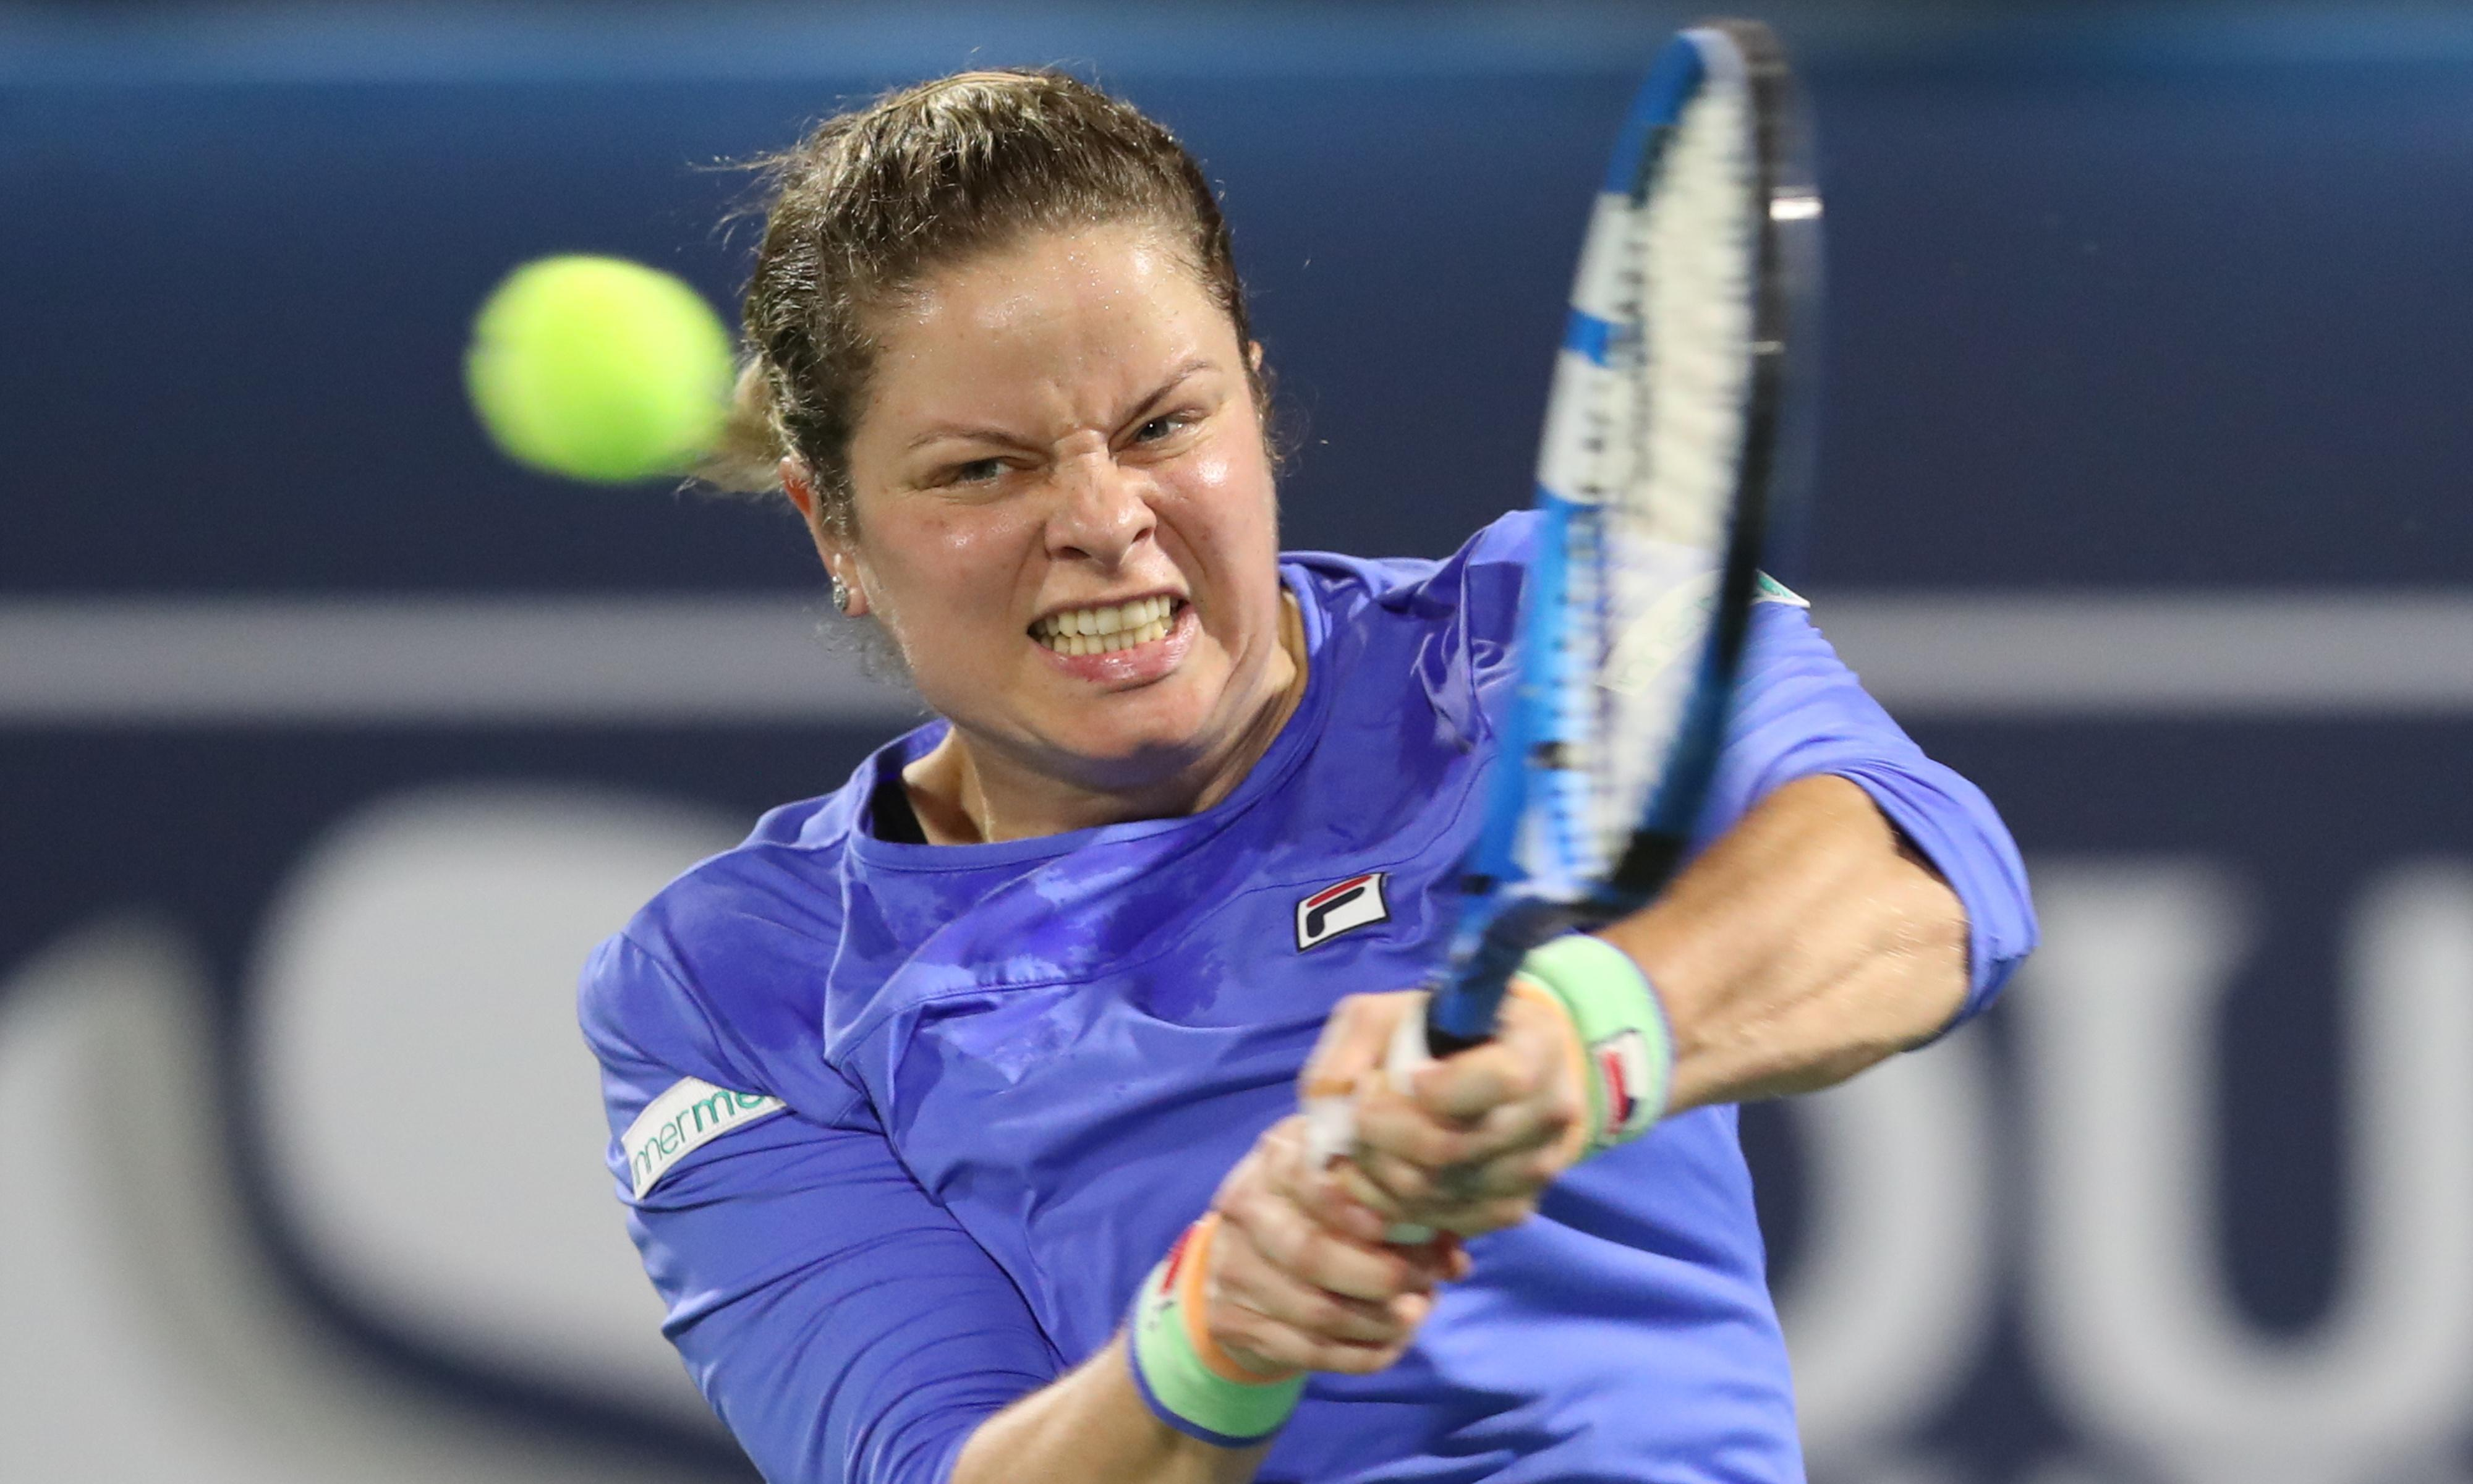 Kim Clijsters returns to tennis with renewed energy the overriding goal